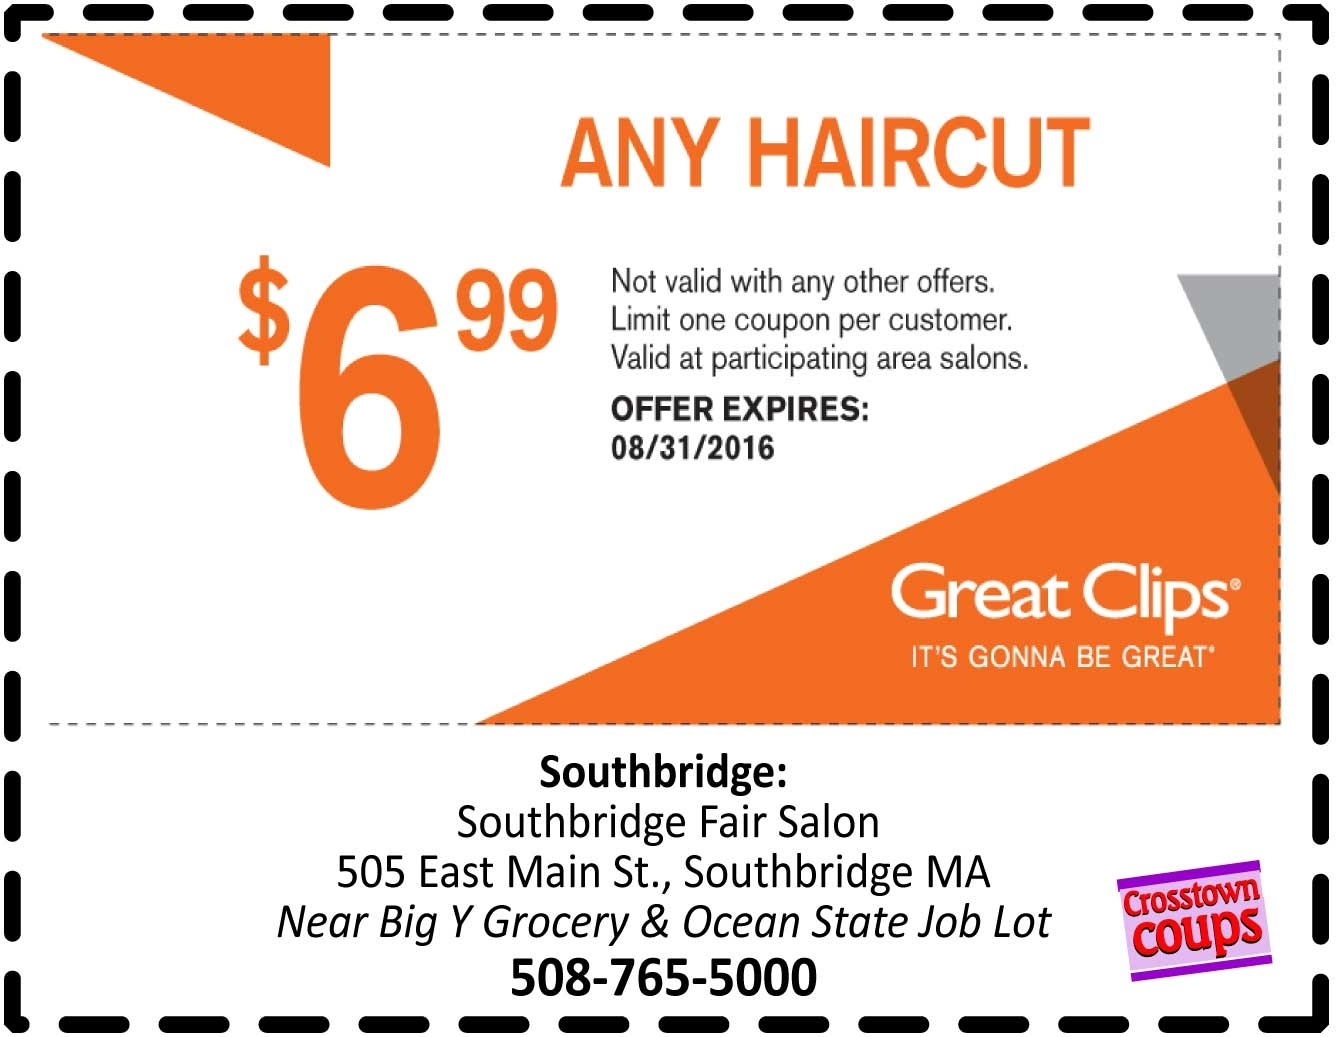 Great Clips Printable Coupons Sep 2018 : Eating Out Deals In Glasgow with regard to Great Clips Haircut Deals 2018